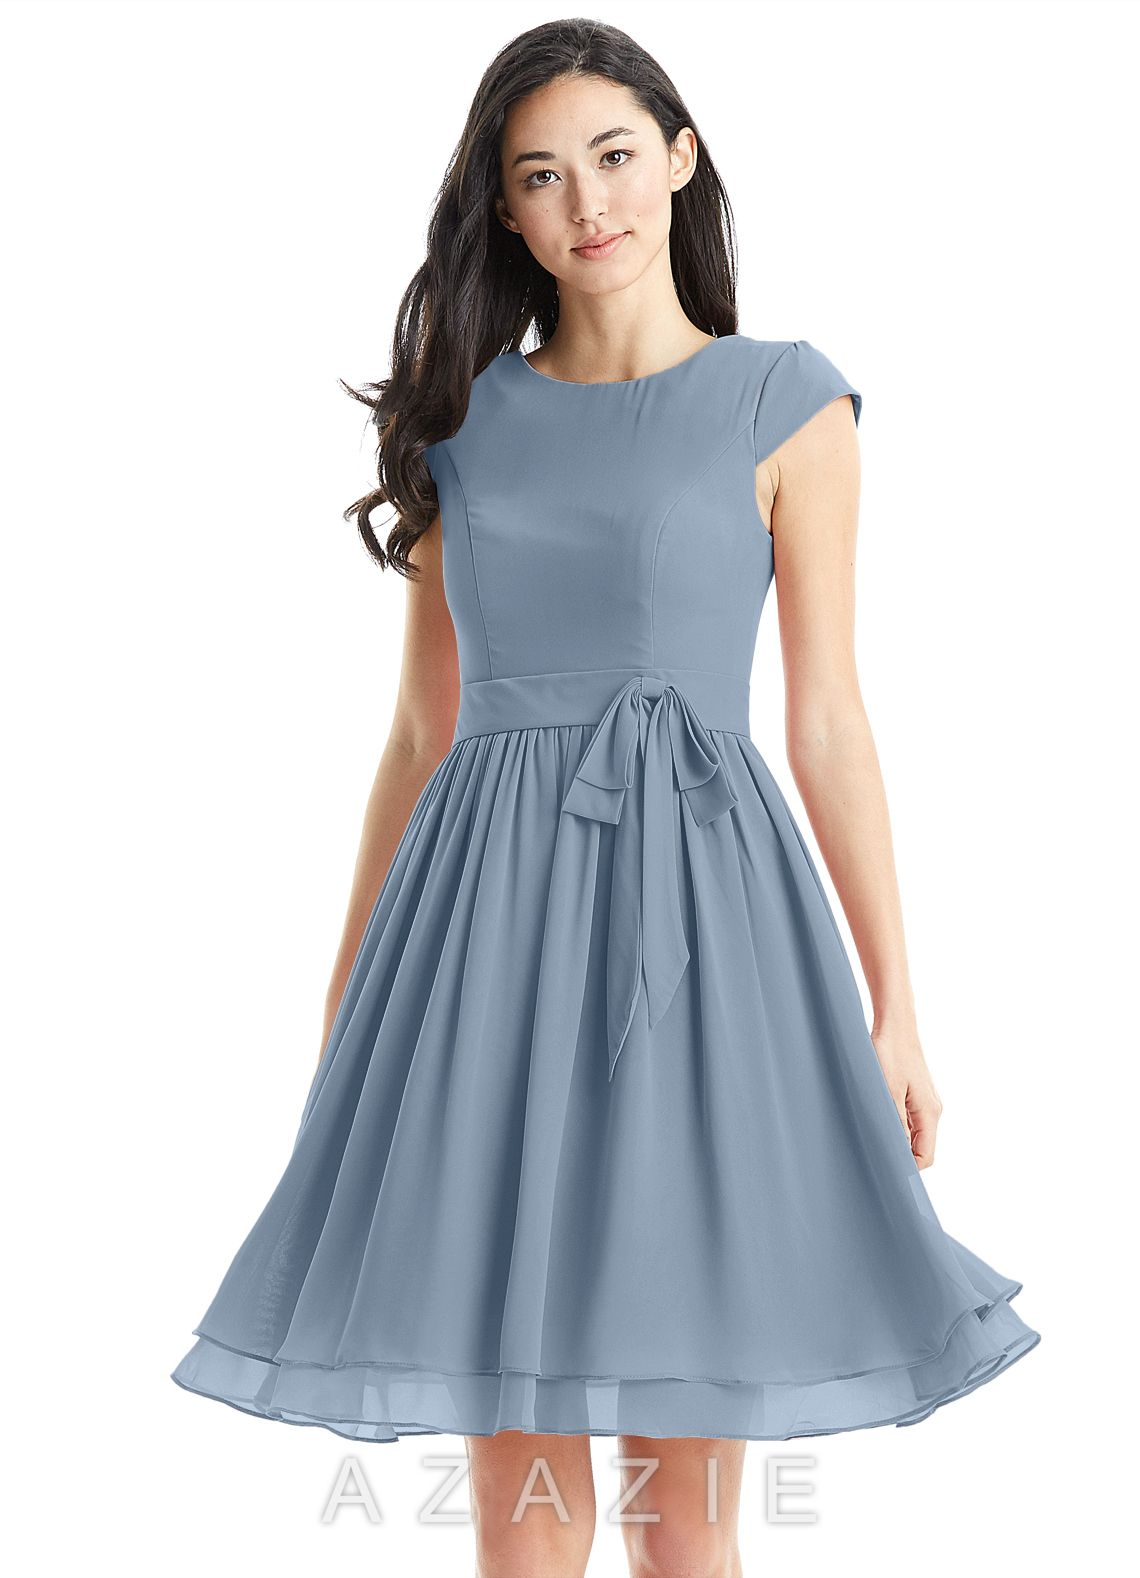 aa05e3eaa3 Azazie Ingrid Bridesmaid Dress